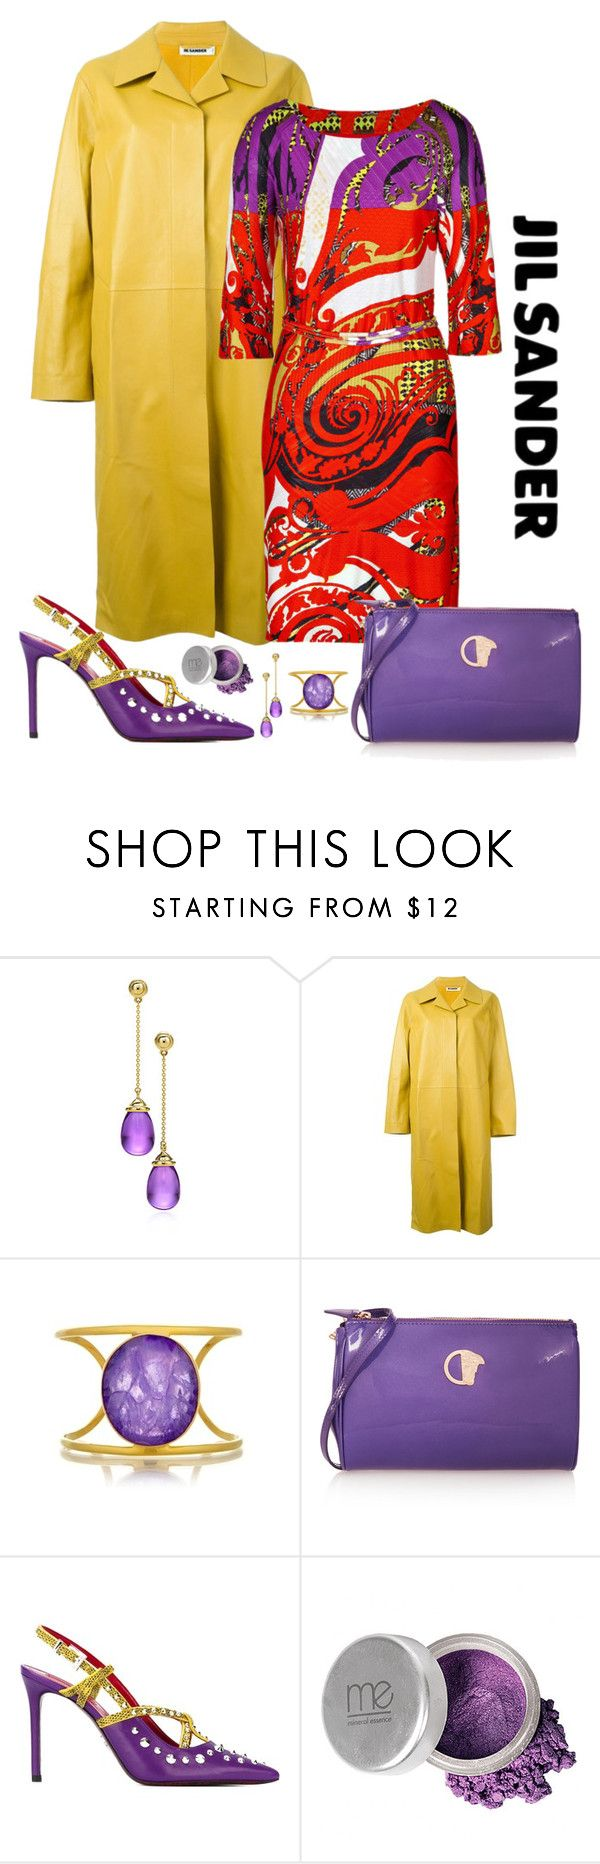 """""""Jil Sander Lambskin Coat Look"""" by romaboots-1 ❤ liked on Polyvore featuring Paloma Picasso, Jil Sander, Etro, Isharya, Versace, Cesare Paciotti and Mineral Essence"""